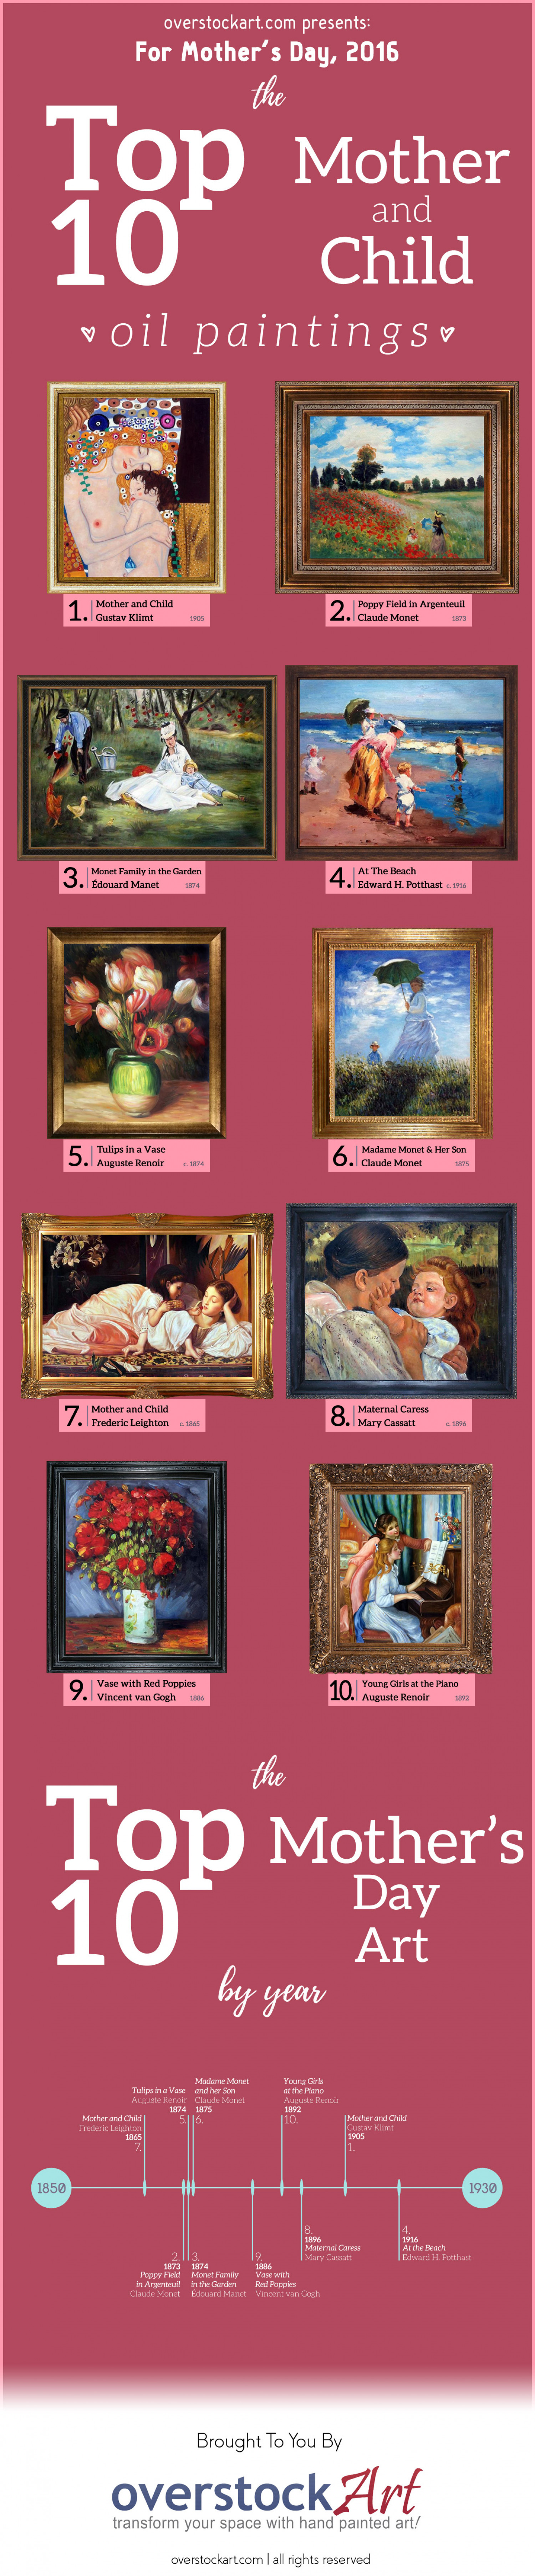 The Top Ten Paintings for Mother's Day 2016 Infographic